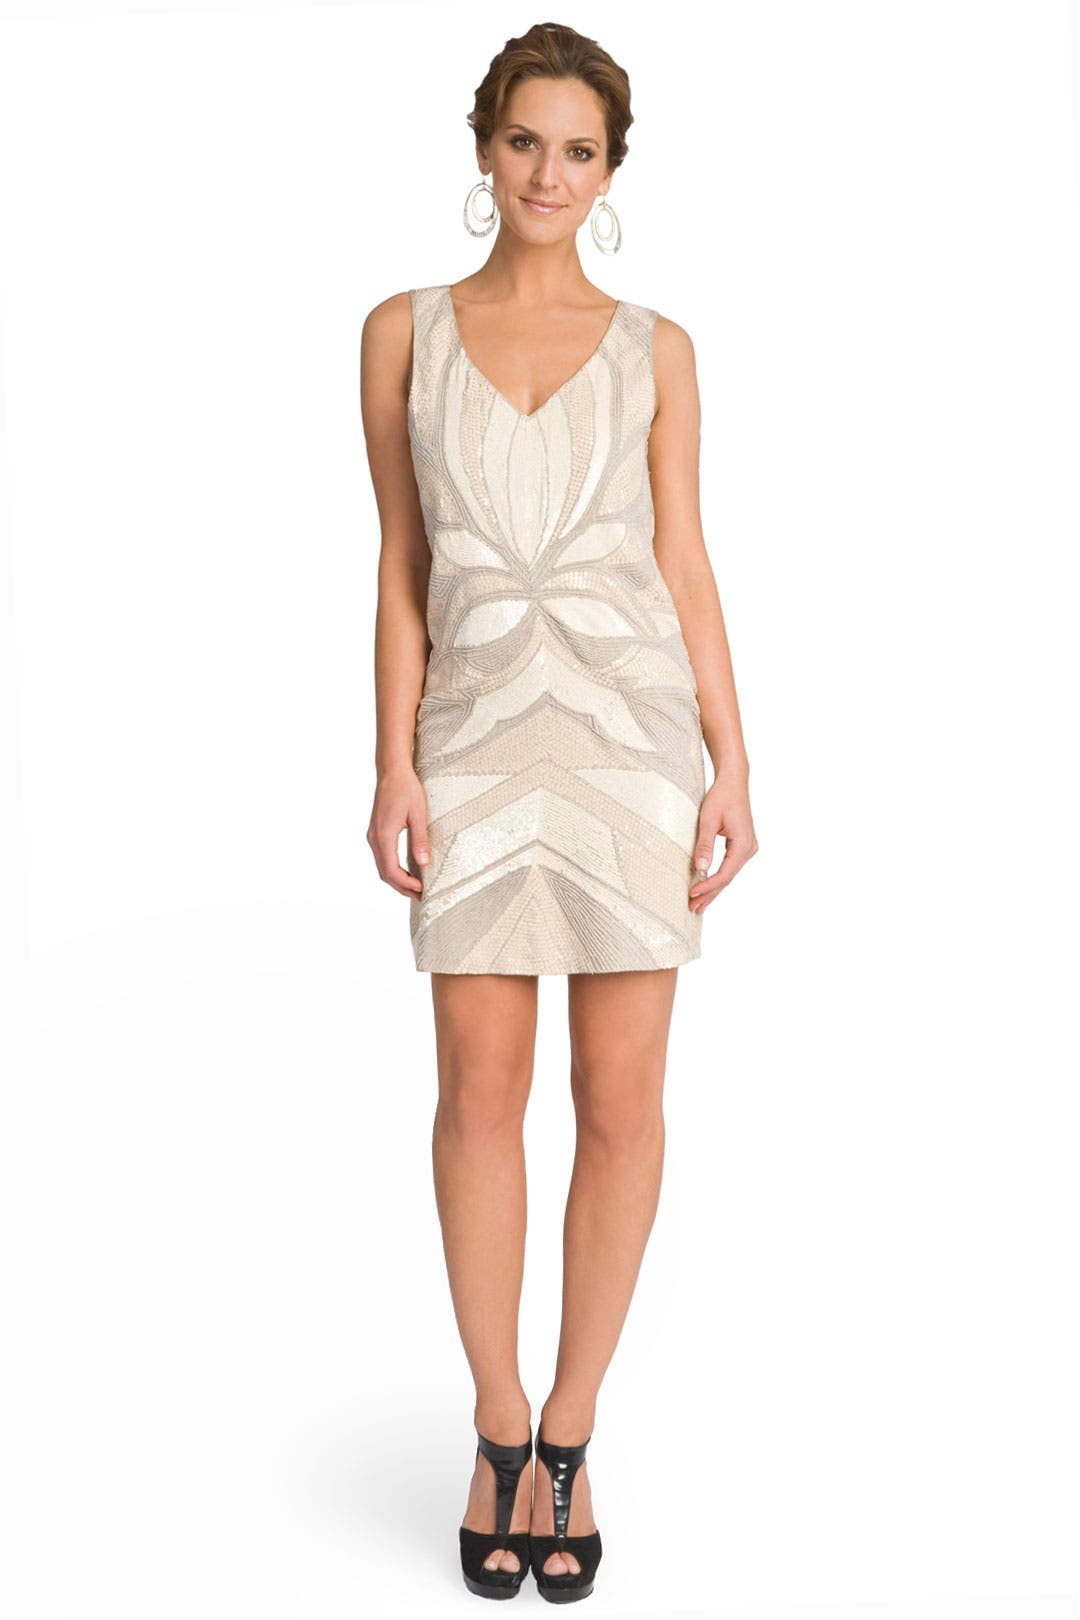 Art Deco Print Beaded Shift by Mark & James by Badgley Mischka